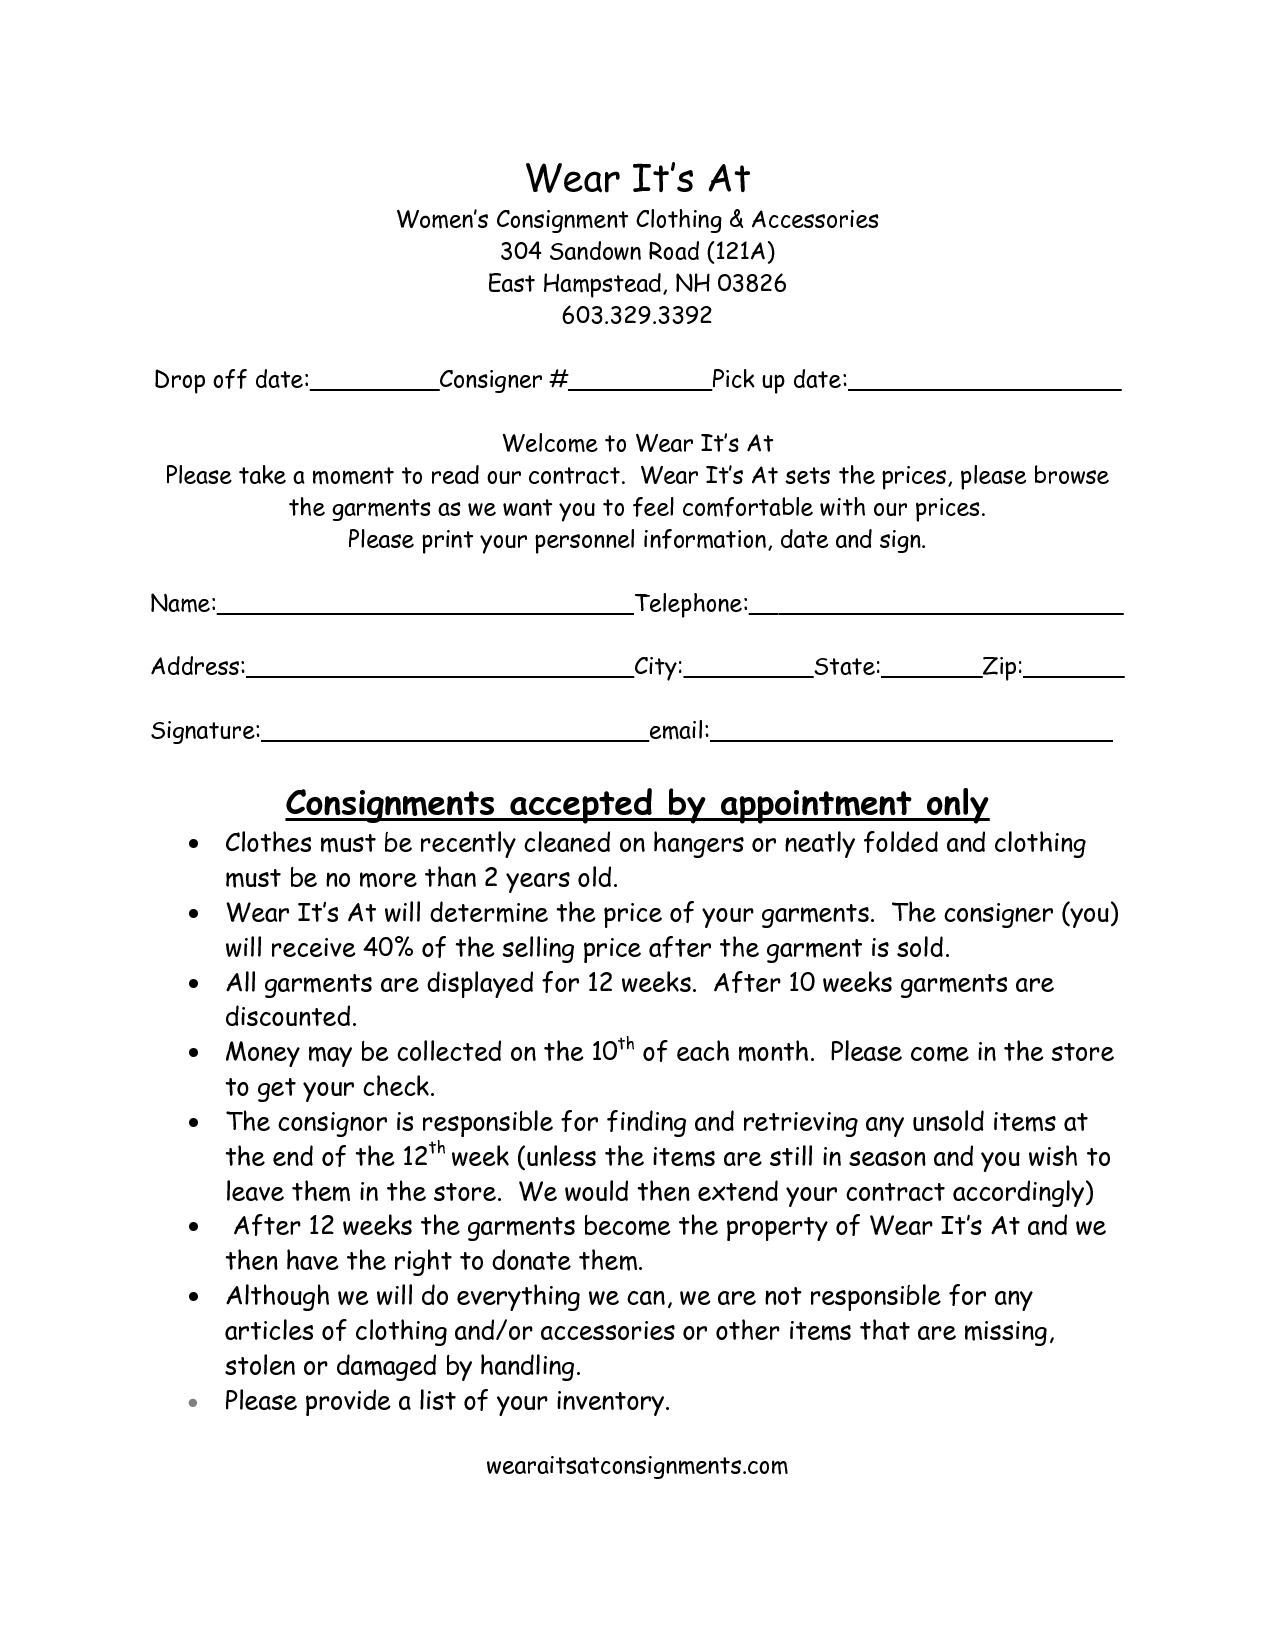 Clothing Consignment Contract Template | Scope Of Work Template  Consignment Agreement Definition